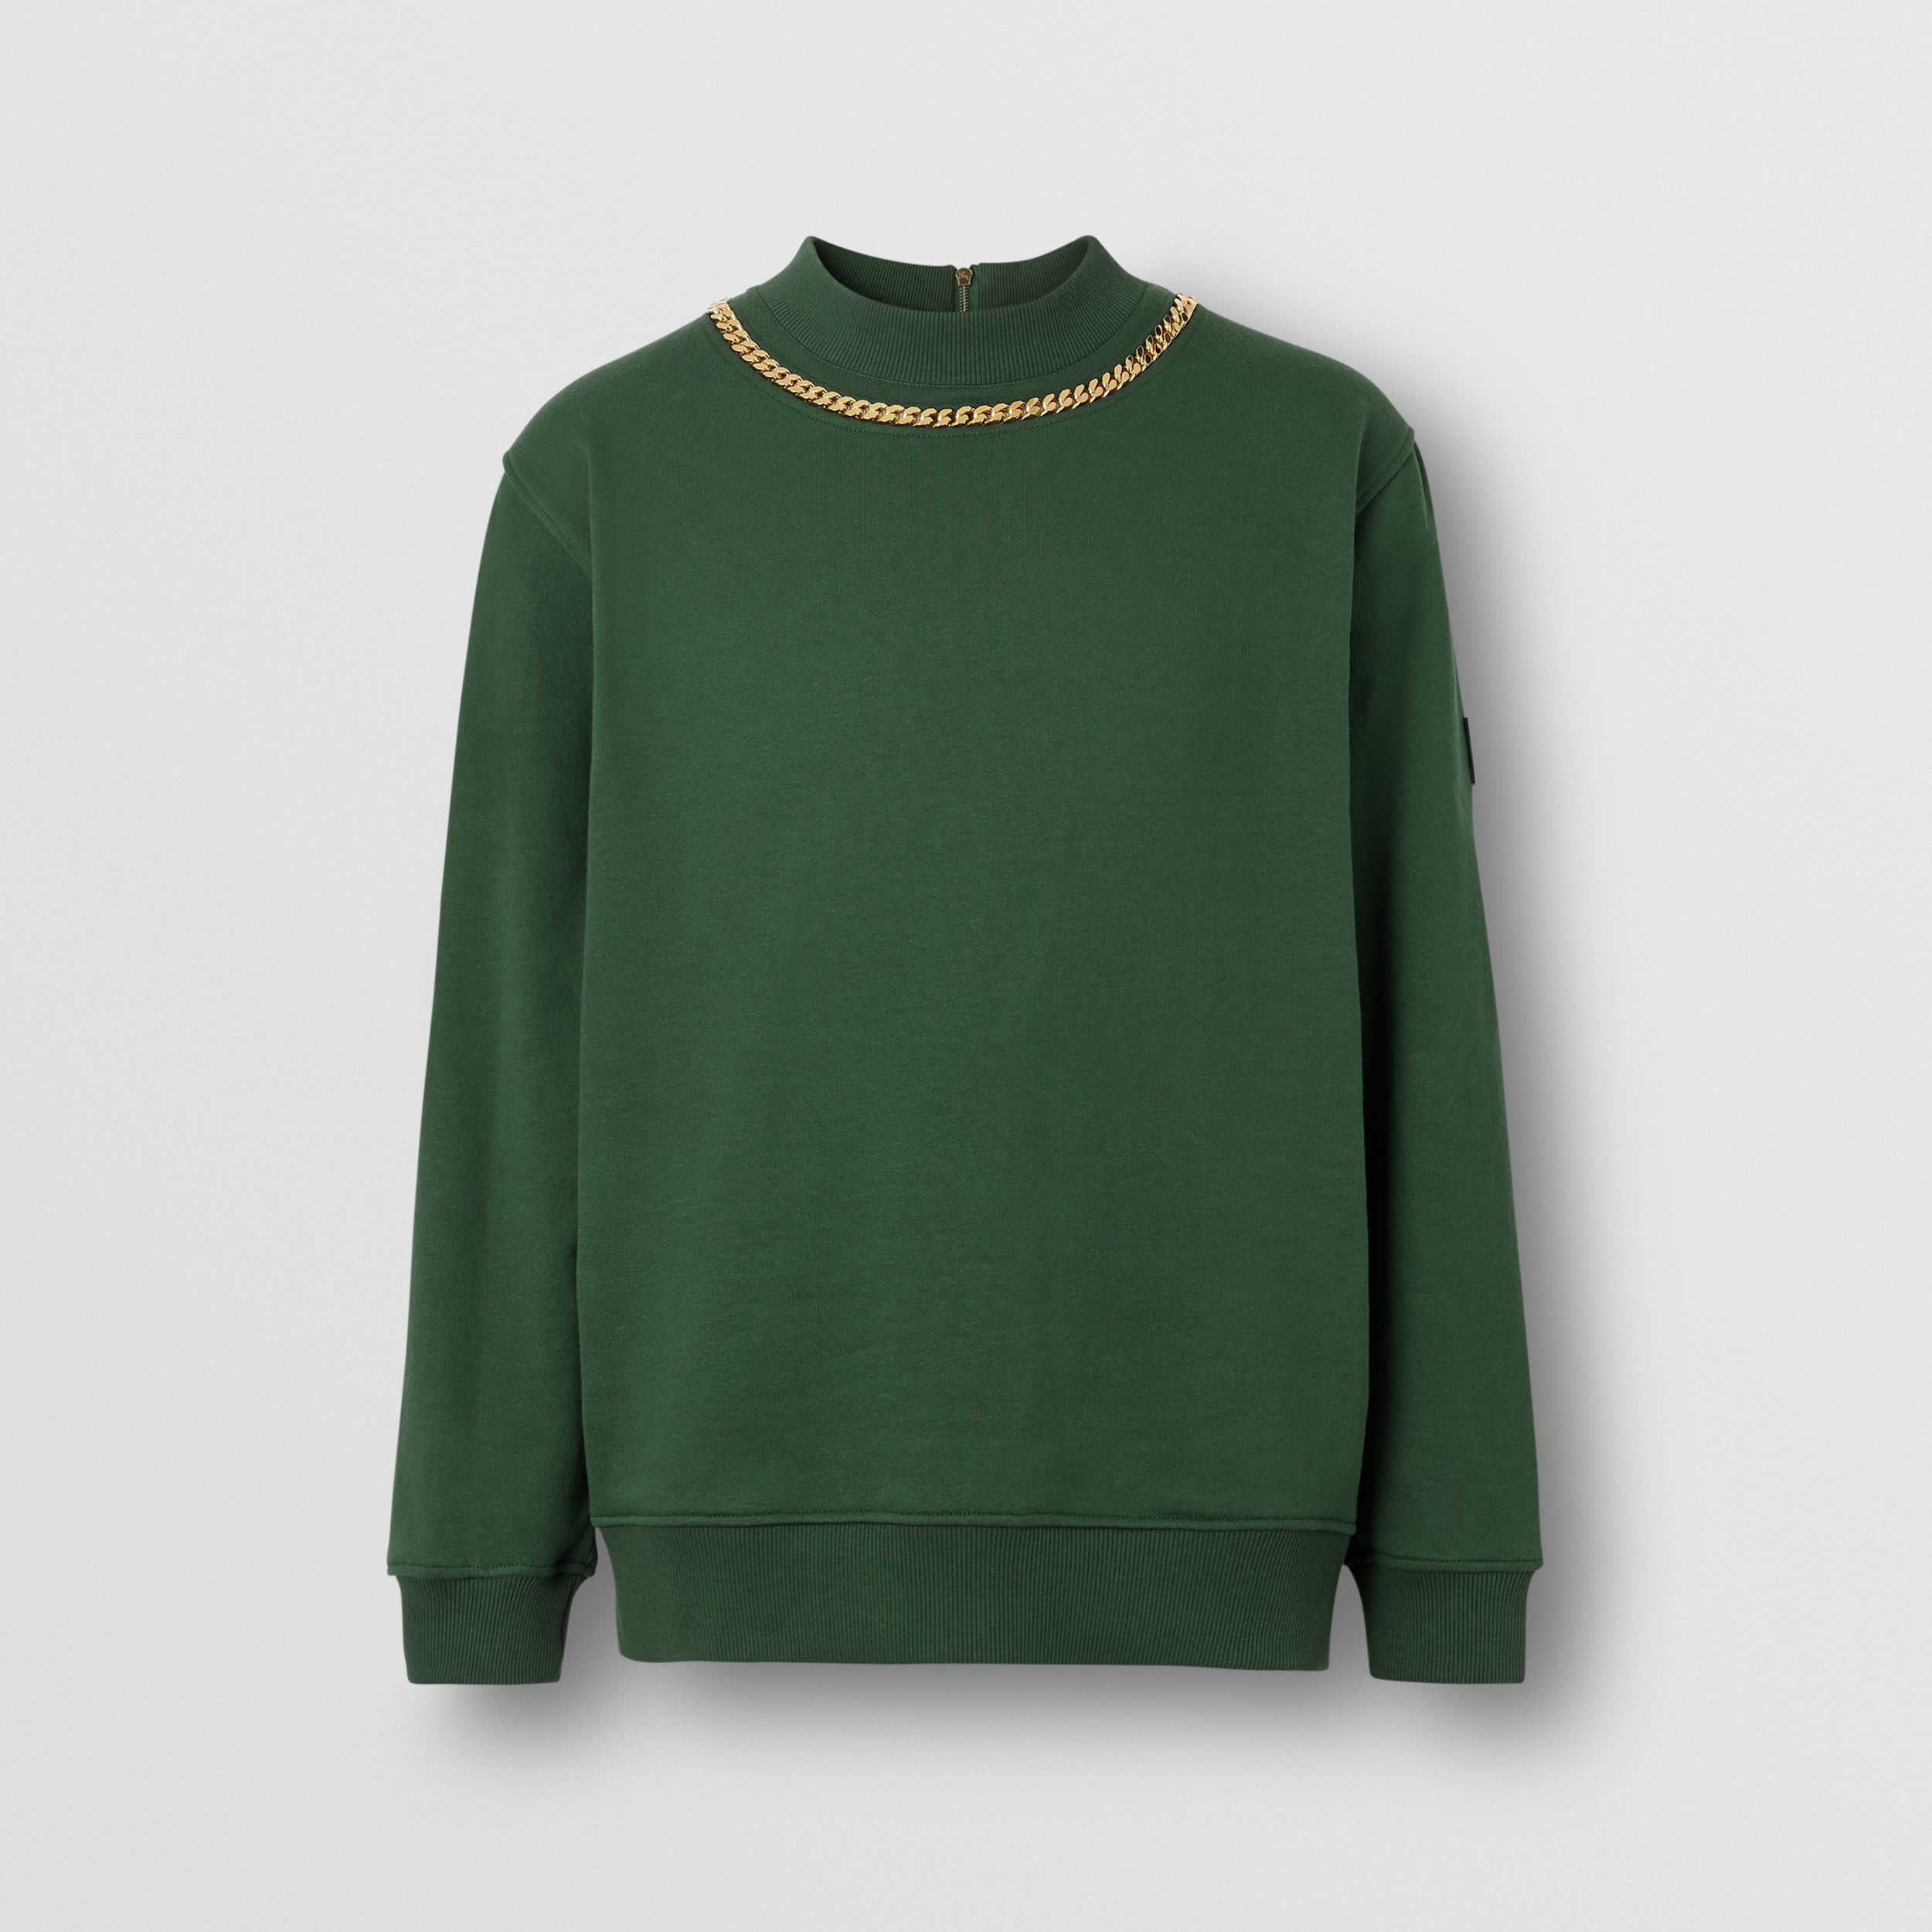 Chain Detail Cotton Sweatshirt in Dark Pine Green - Men | Burberry - 4